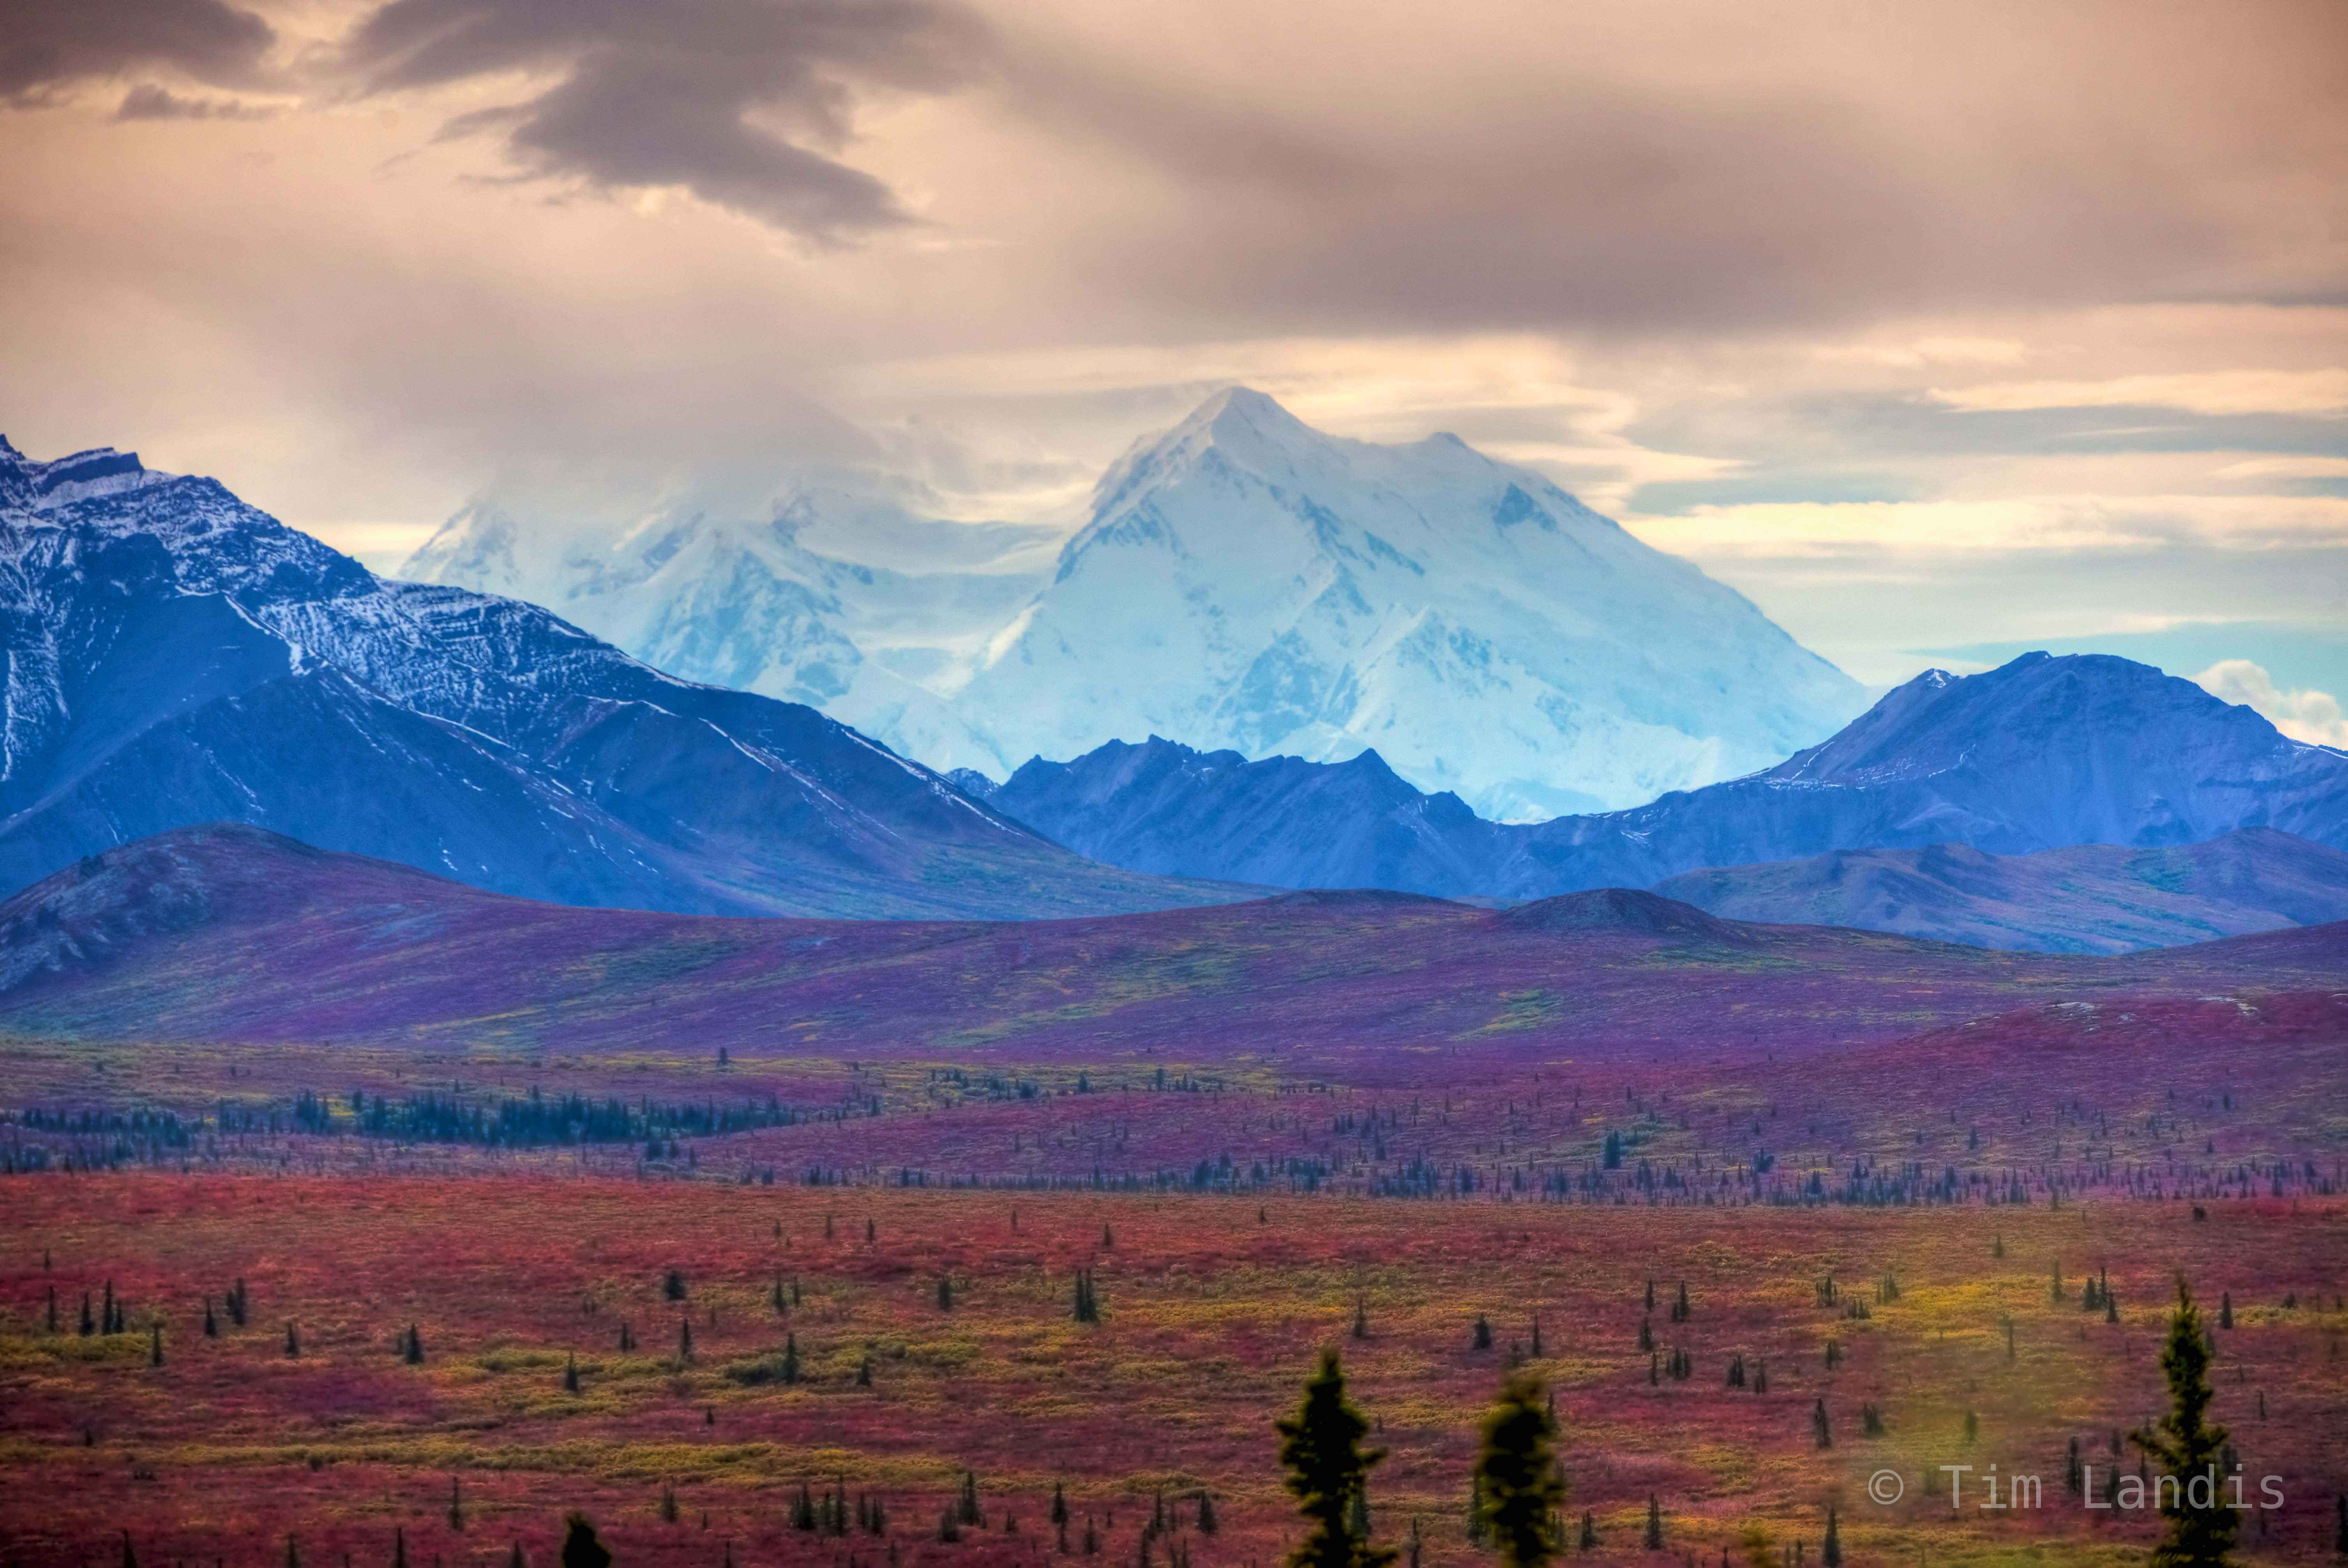 Mt. Denali looms over the red button willows, photo